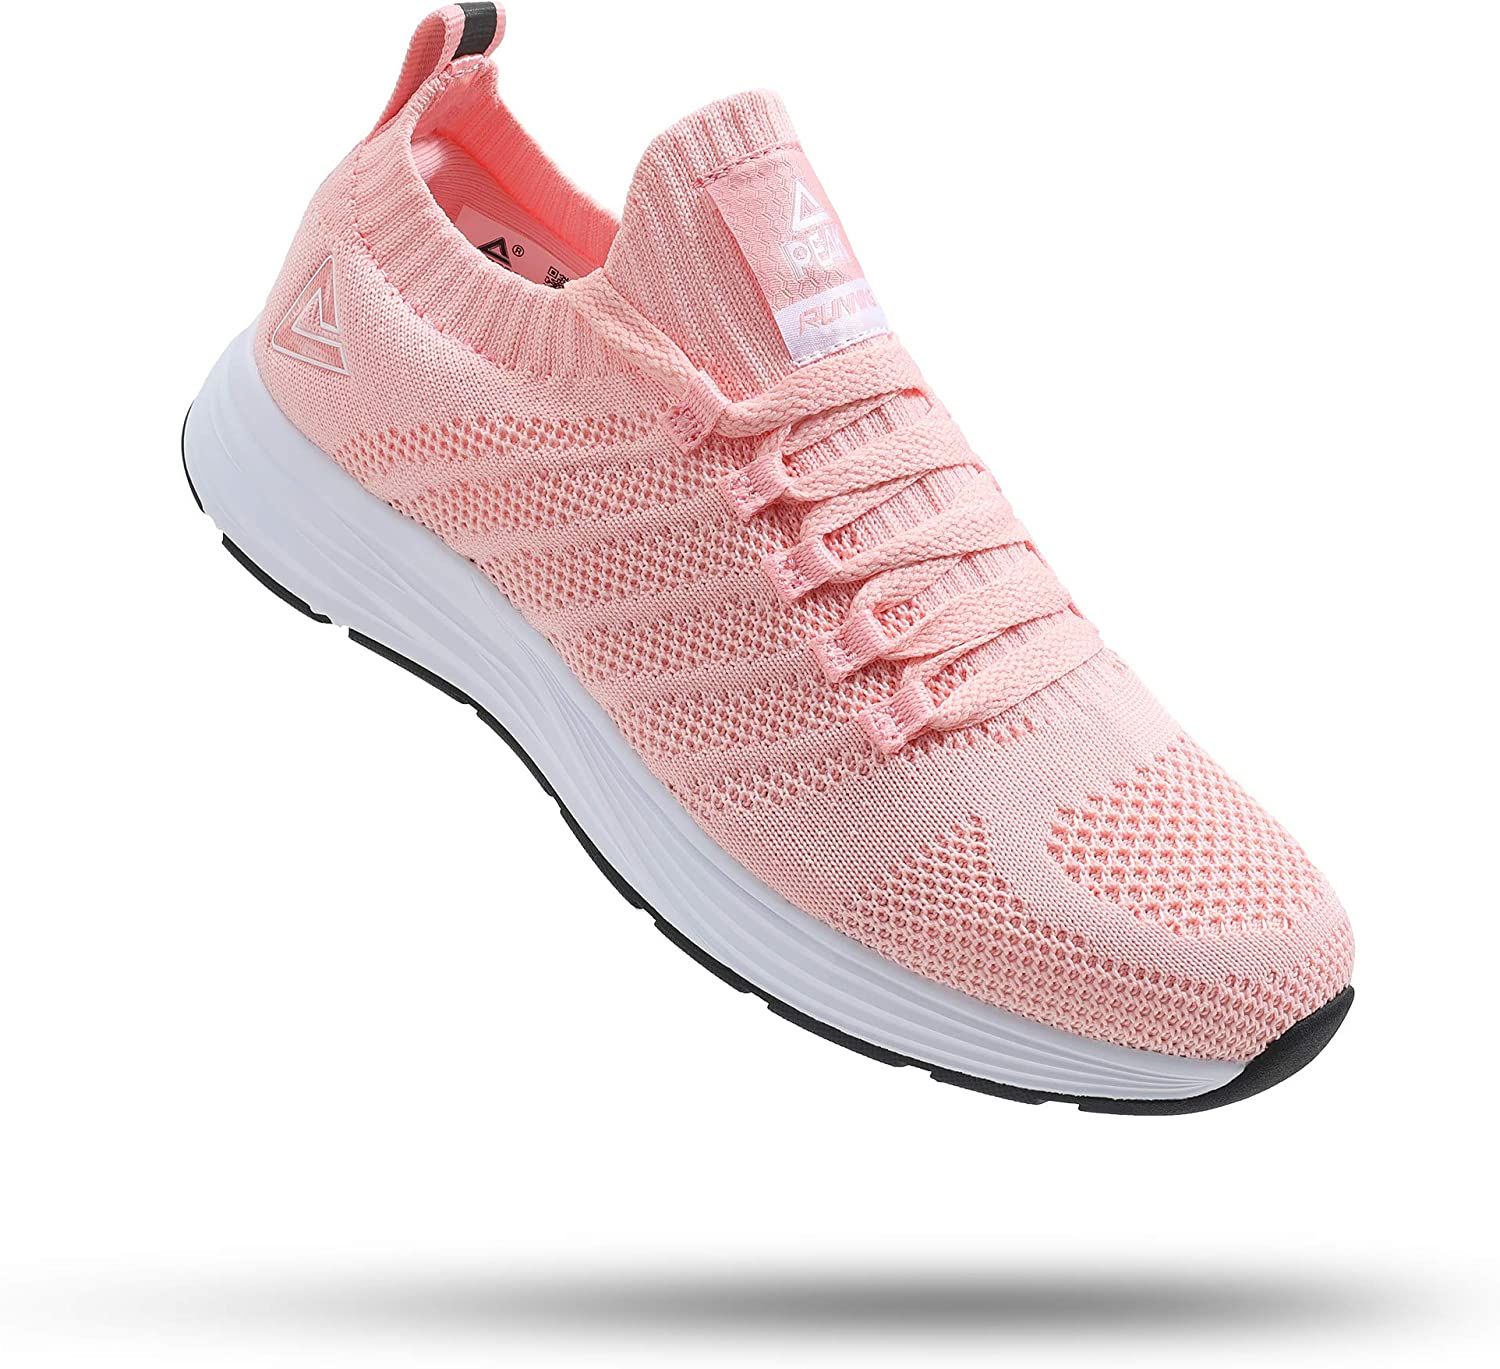 PEAK Womens Lightweight Walking Shoes - Comfortable Slip-on Sneakers for Running, Tennis, Gym, Casual Workout